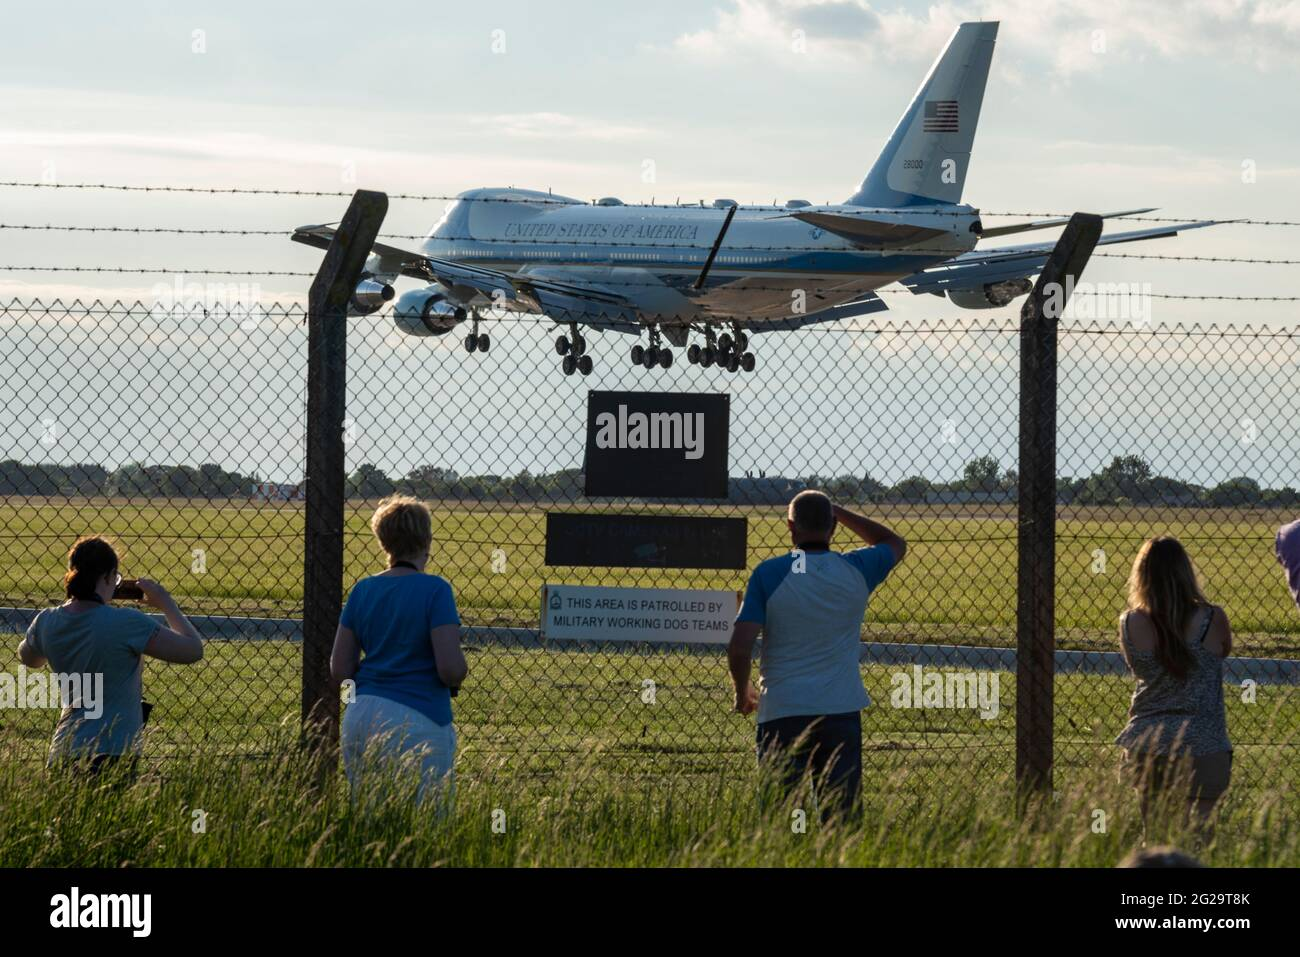 raf-mildenhall-suffolk-uk-9th-jun-2021-us-president-joe-biden-has-flown-from-washington-to-raf-mildenhall-in-suffolk-aboard-air-force-one-a-boeing-vc-25a-converted-747-jumbo-jet-landing-in-the-early-evening-the-airbase-is-used-by-the-us-air-force-100th-air-refuelling-wing-whose-stationed-personnel-will-be-inspected-by-biden-as-the-first-scheduled-event-of-his-five-day-uk-visit-biden-will-depart-later-in-the-evening-to-relocate-for-meetings-with-pm-boris-johnson-and-to-attend-the-g7-summit-in-cornwall-people-watching-af1-from-behind-perimeter-security-fence-2G29T8K.jpg